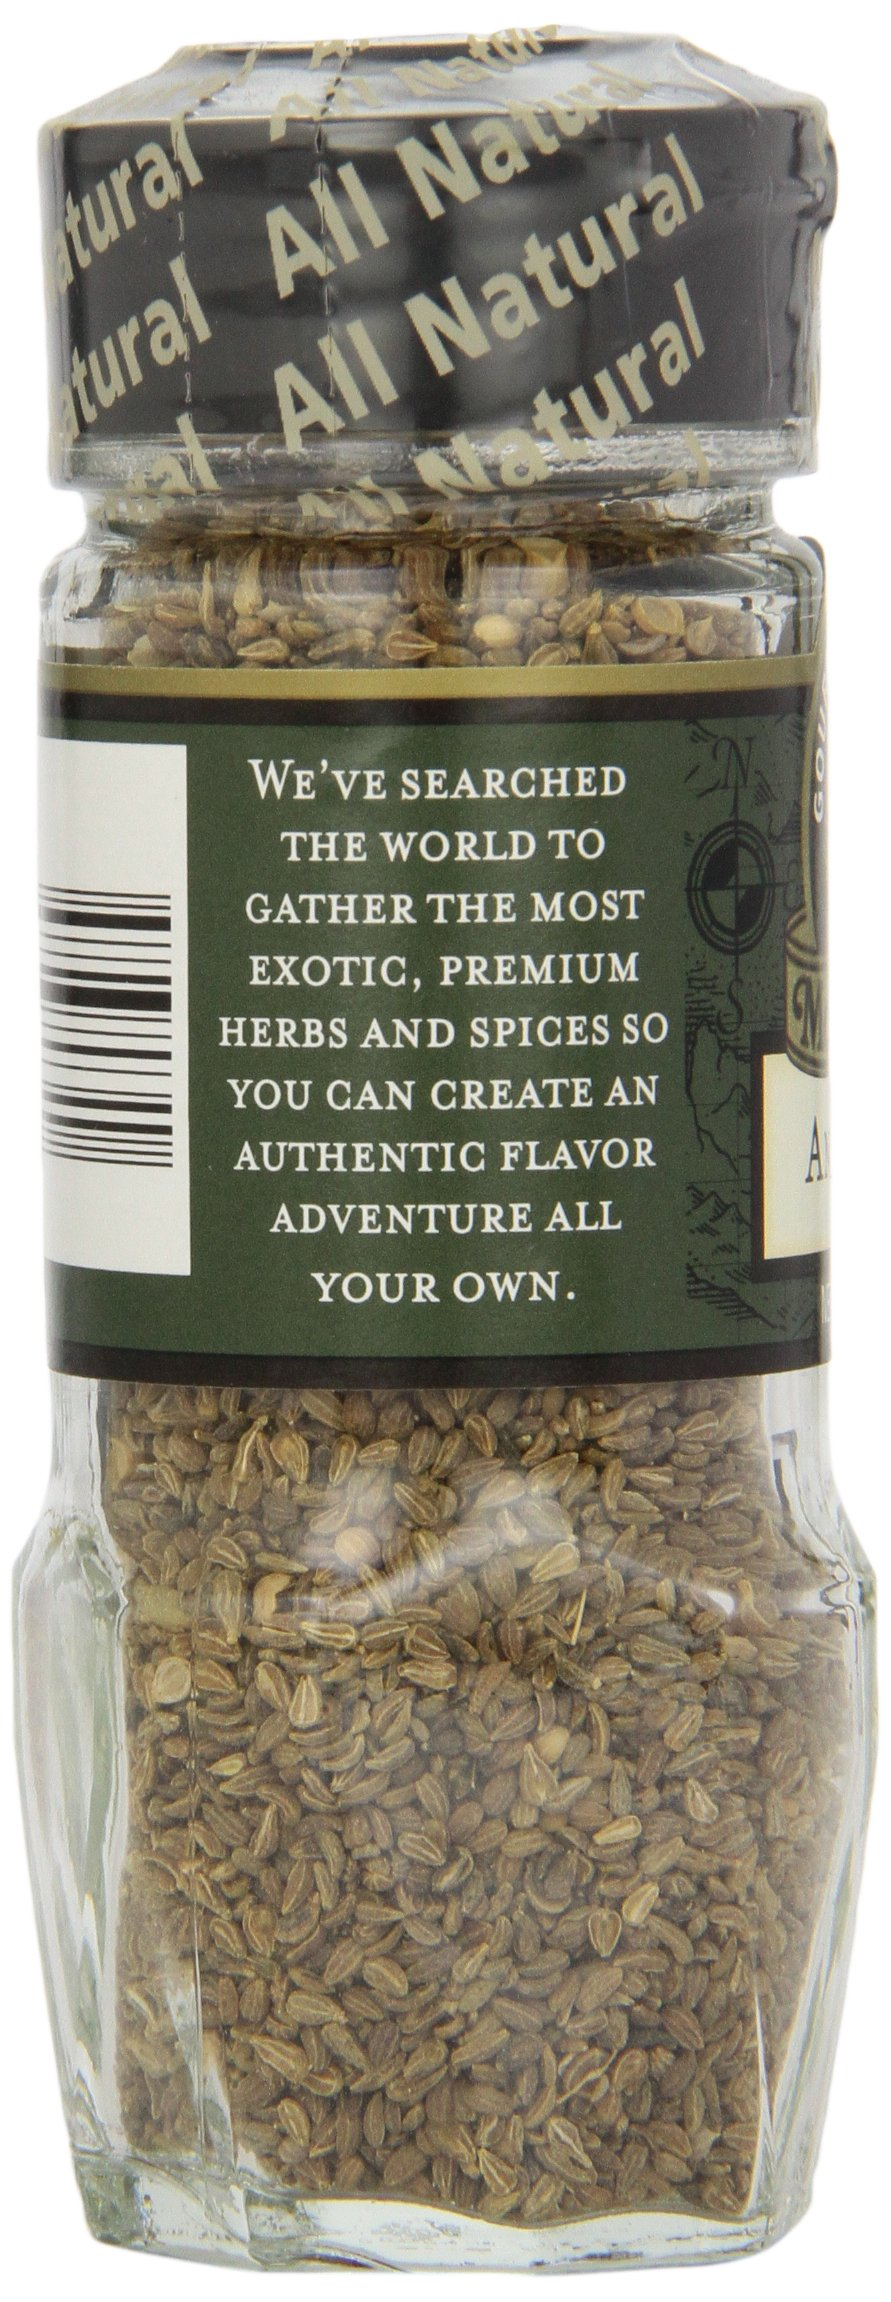 McCormick Gourmet Collection Anise Seed, 1.75 oz